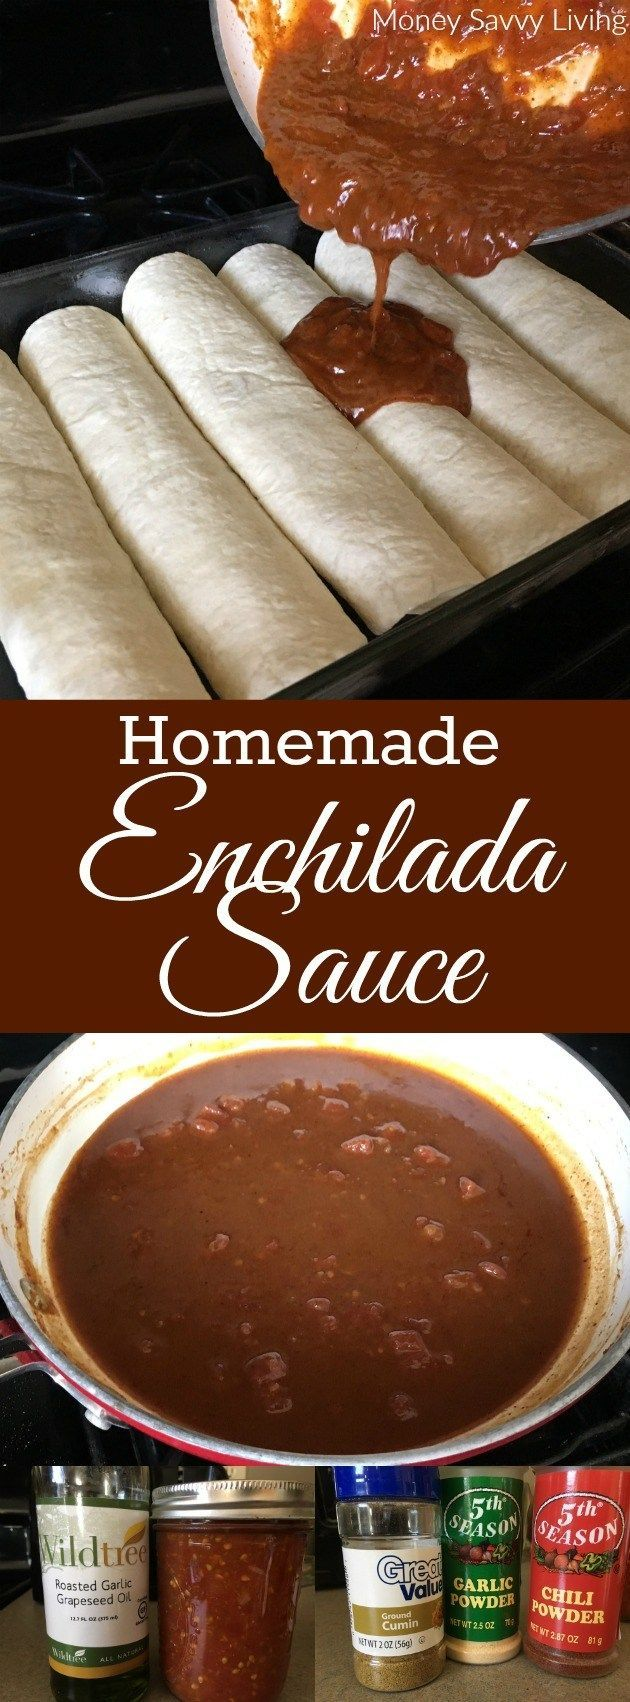 Homemade Enchilada Sauce.  Getting ready for Cinco de Mayo?  Try this delicious recipe for homemade enchilada sauce!   // Money Savvy Living